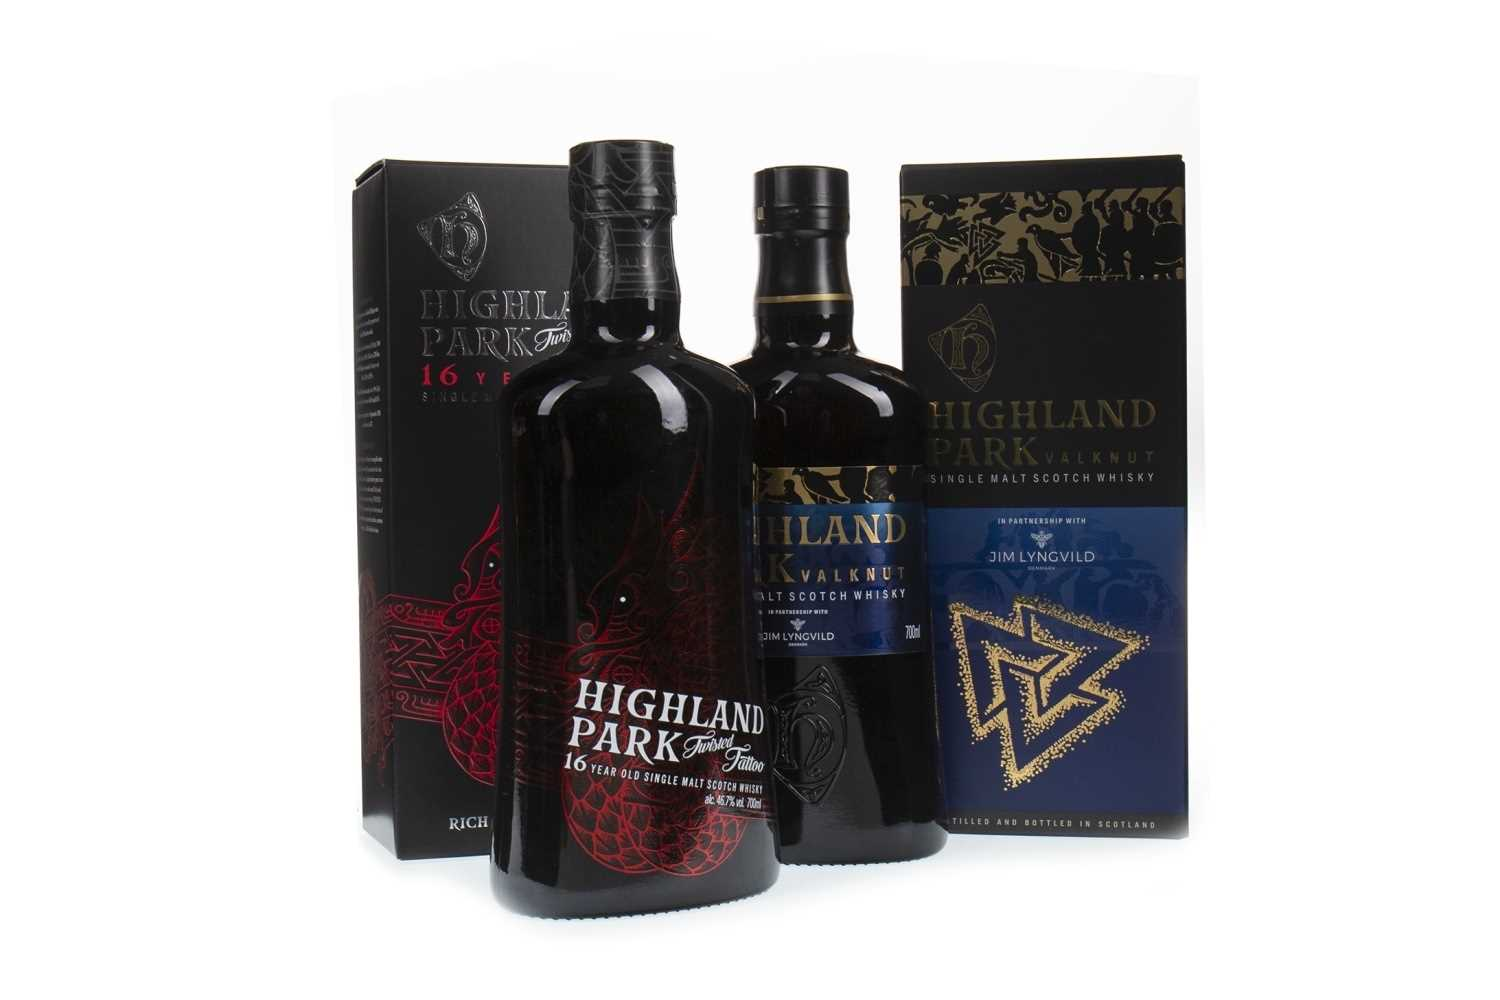 Lot 304-HIGHLAND PARK TWISTED TATTOO 16 YEARS OLD AND VALKNUT